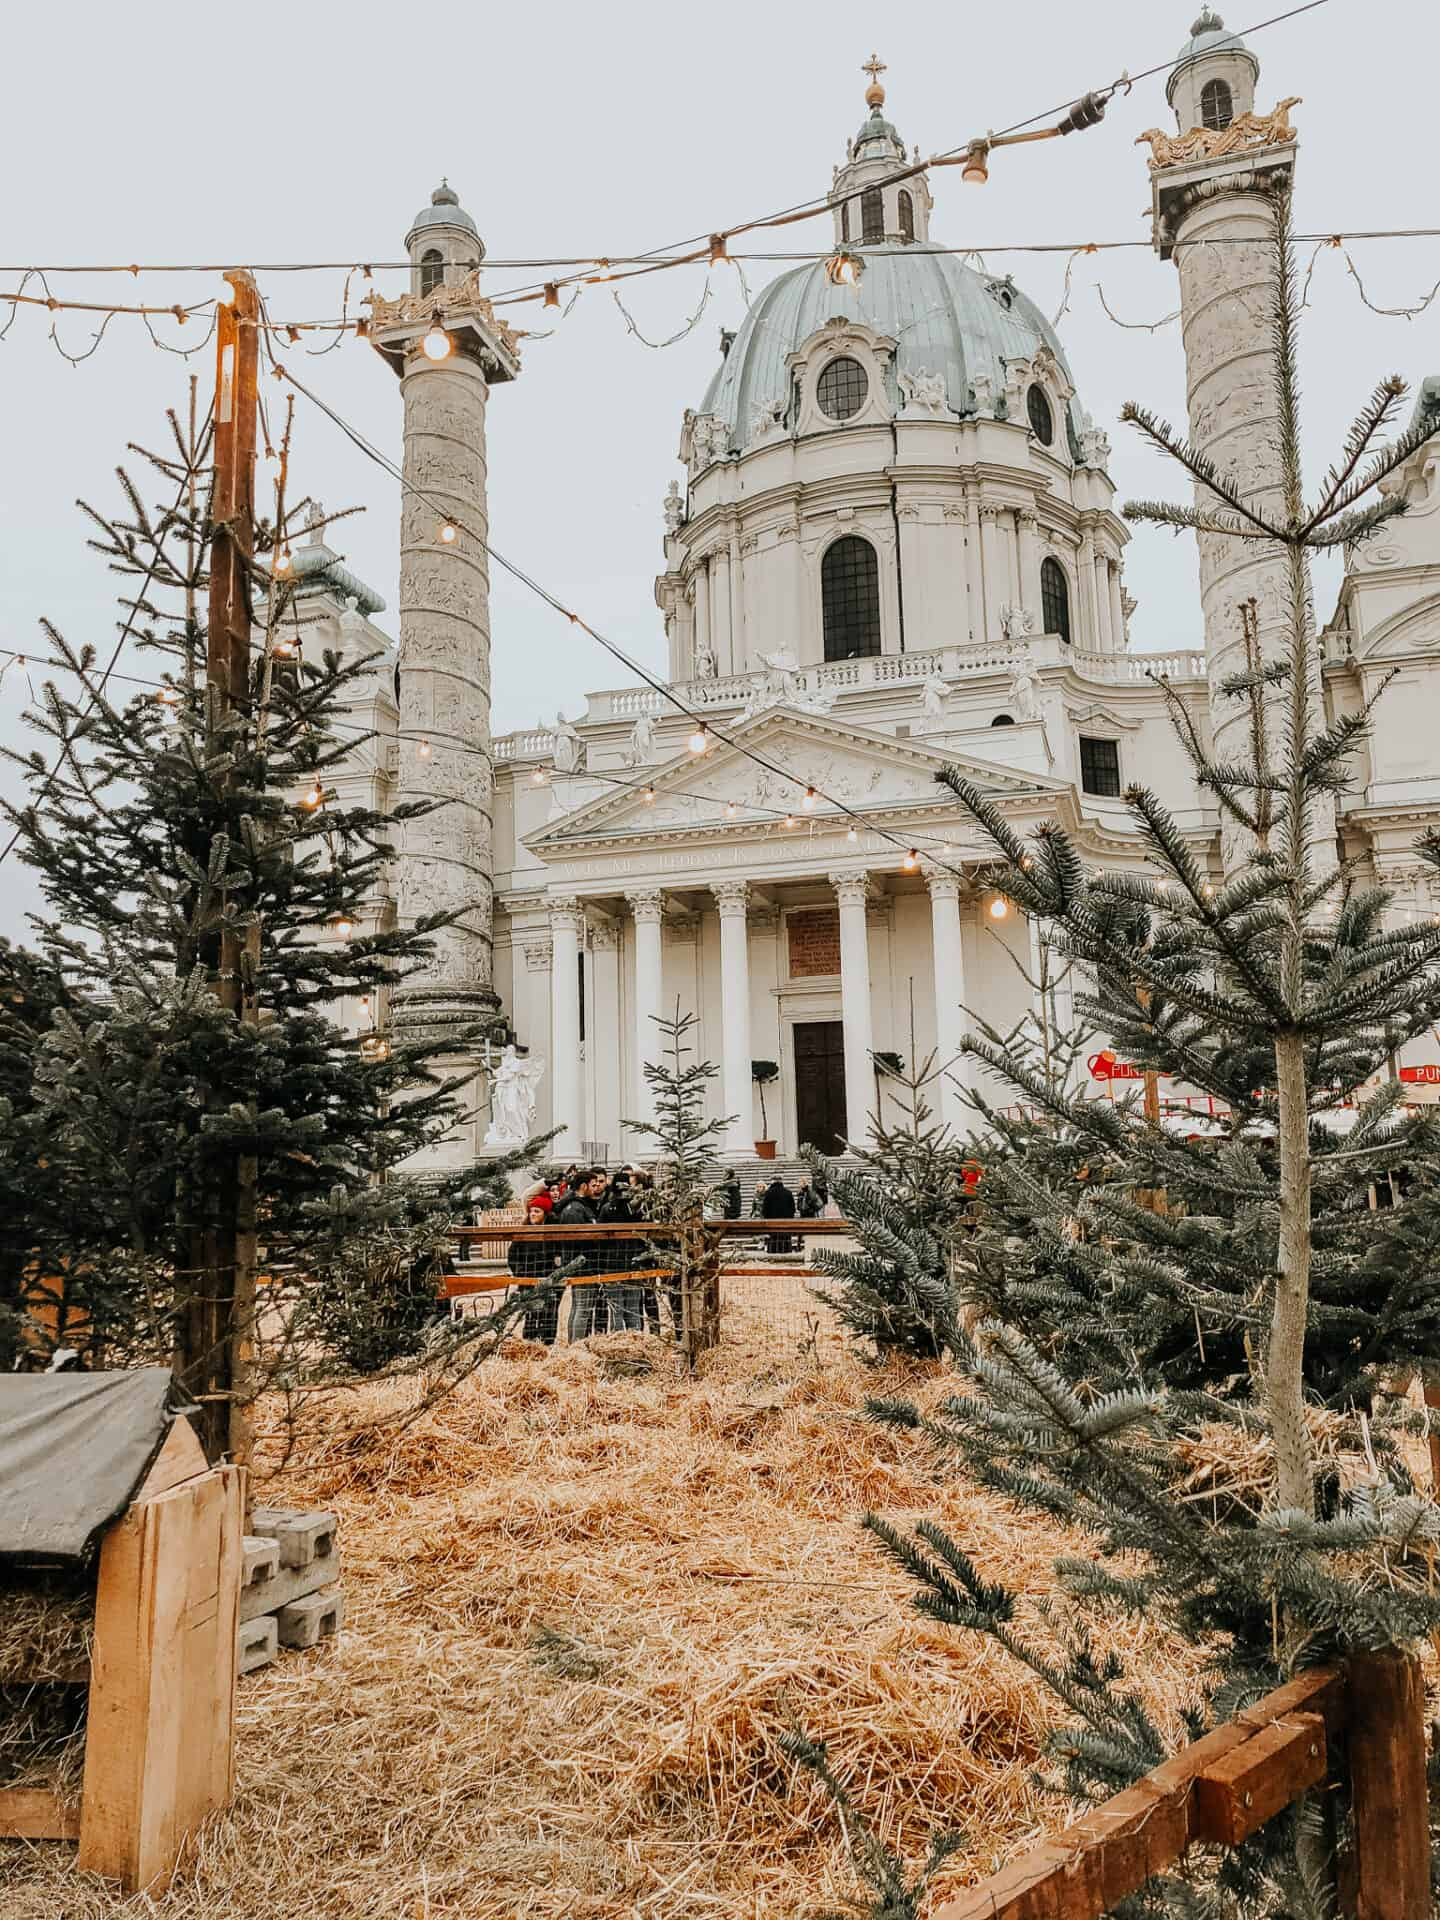 Hay, christmas trees and old church with a green dome